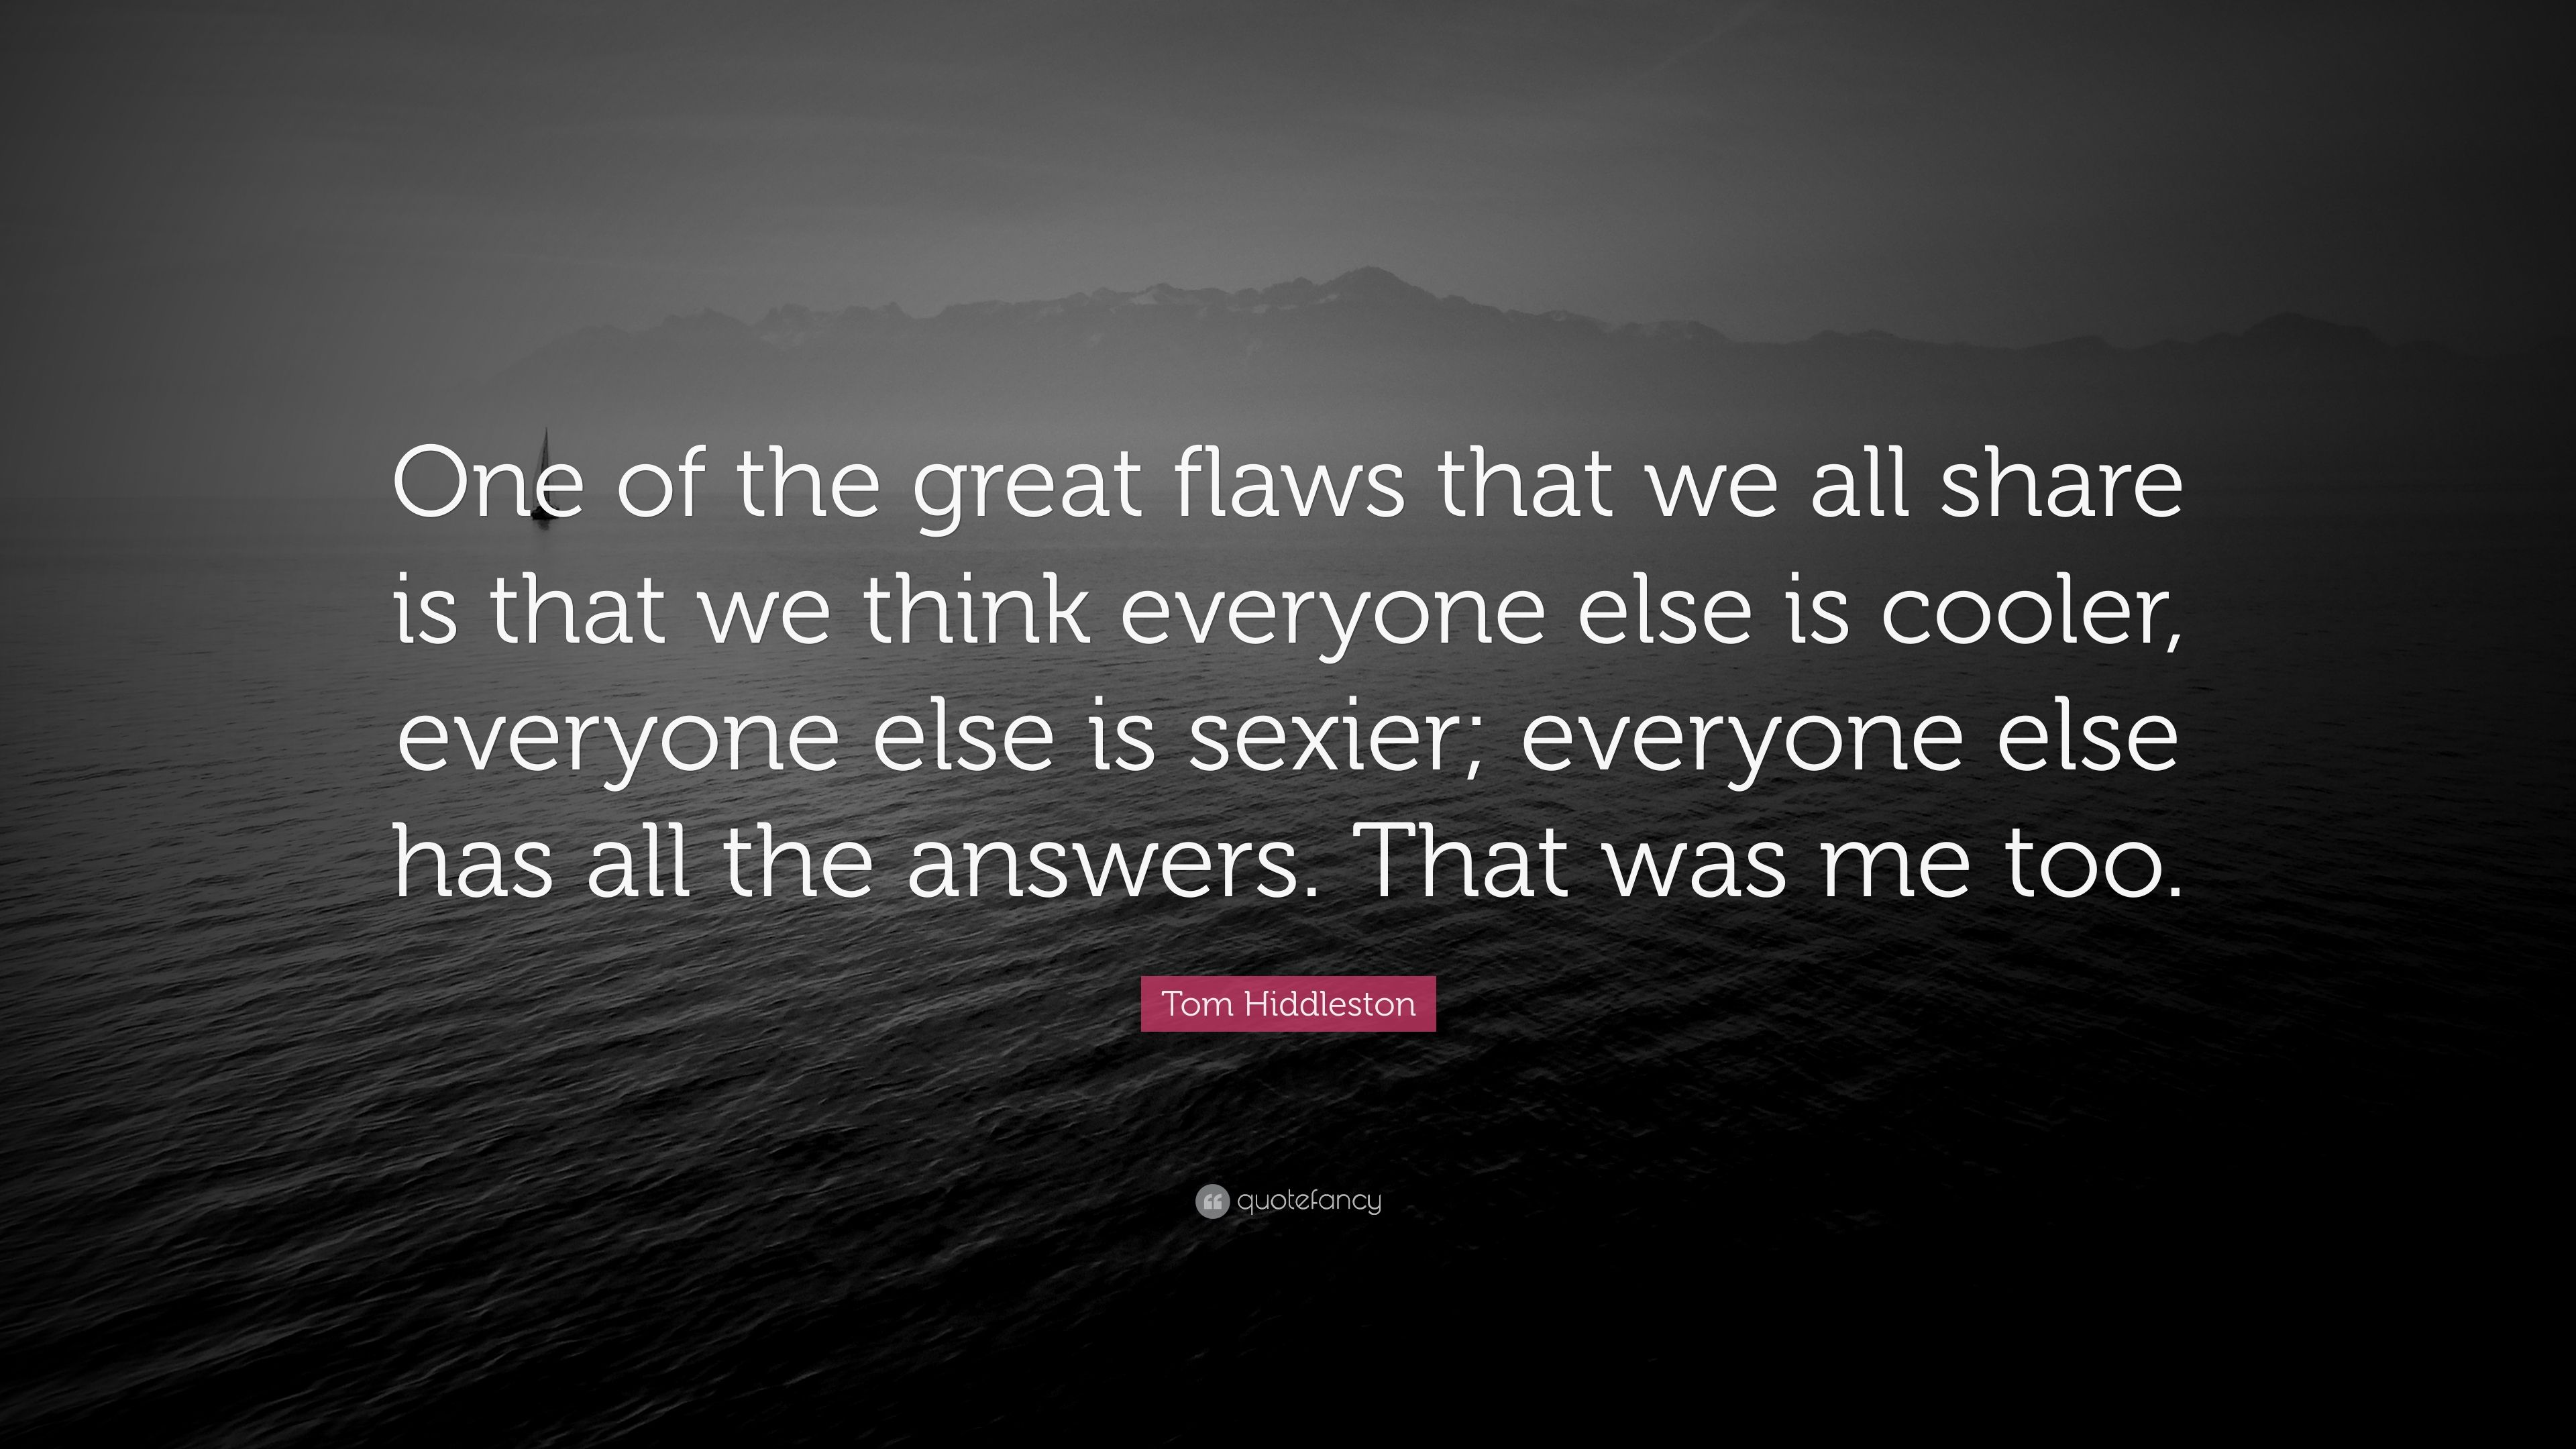 Tom Hiddleston Quote One Of The Great Flaws That We All Share Is